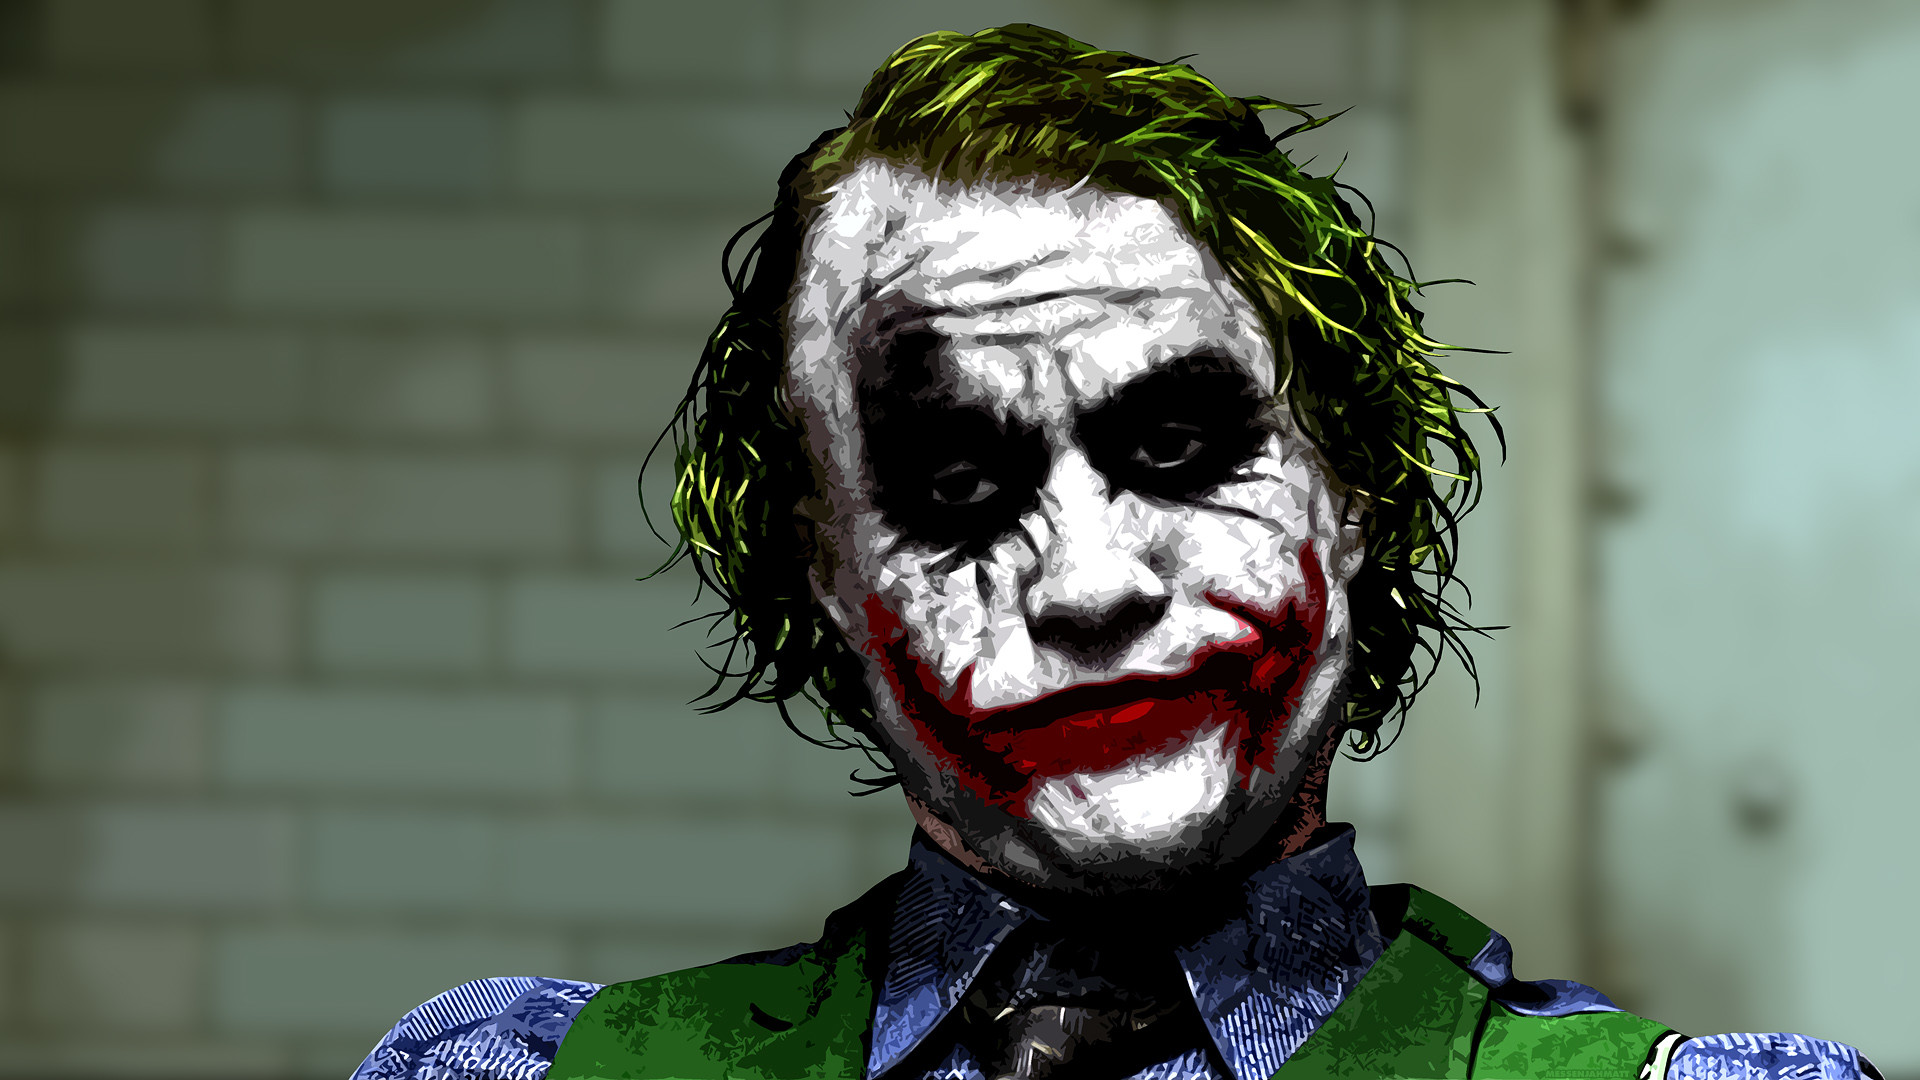 1920x1080 The Joker Wallpapers The Joker Wide Screen Wallpaper